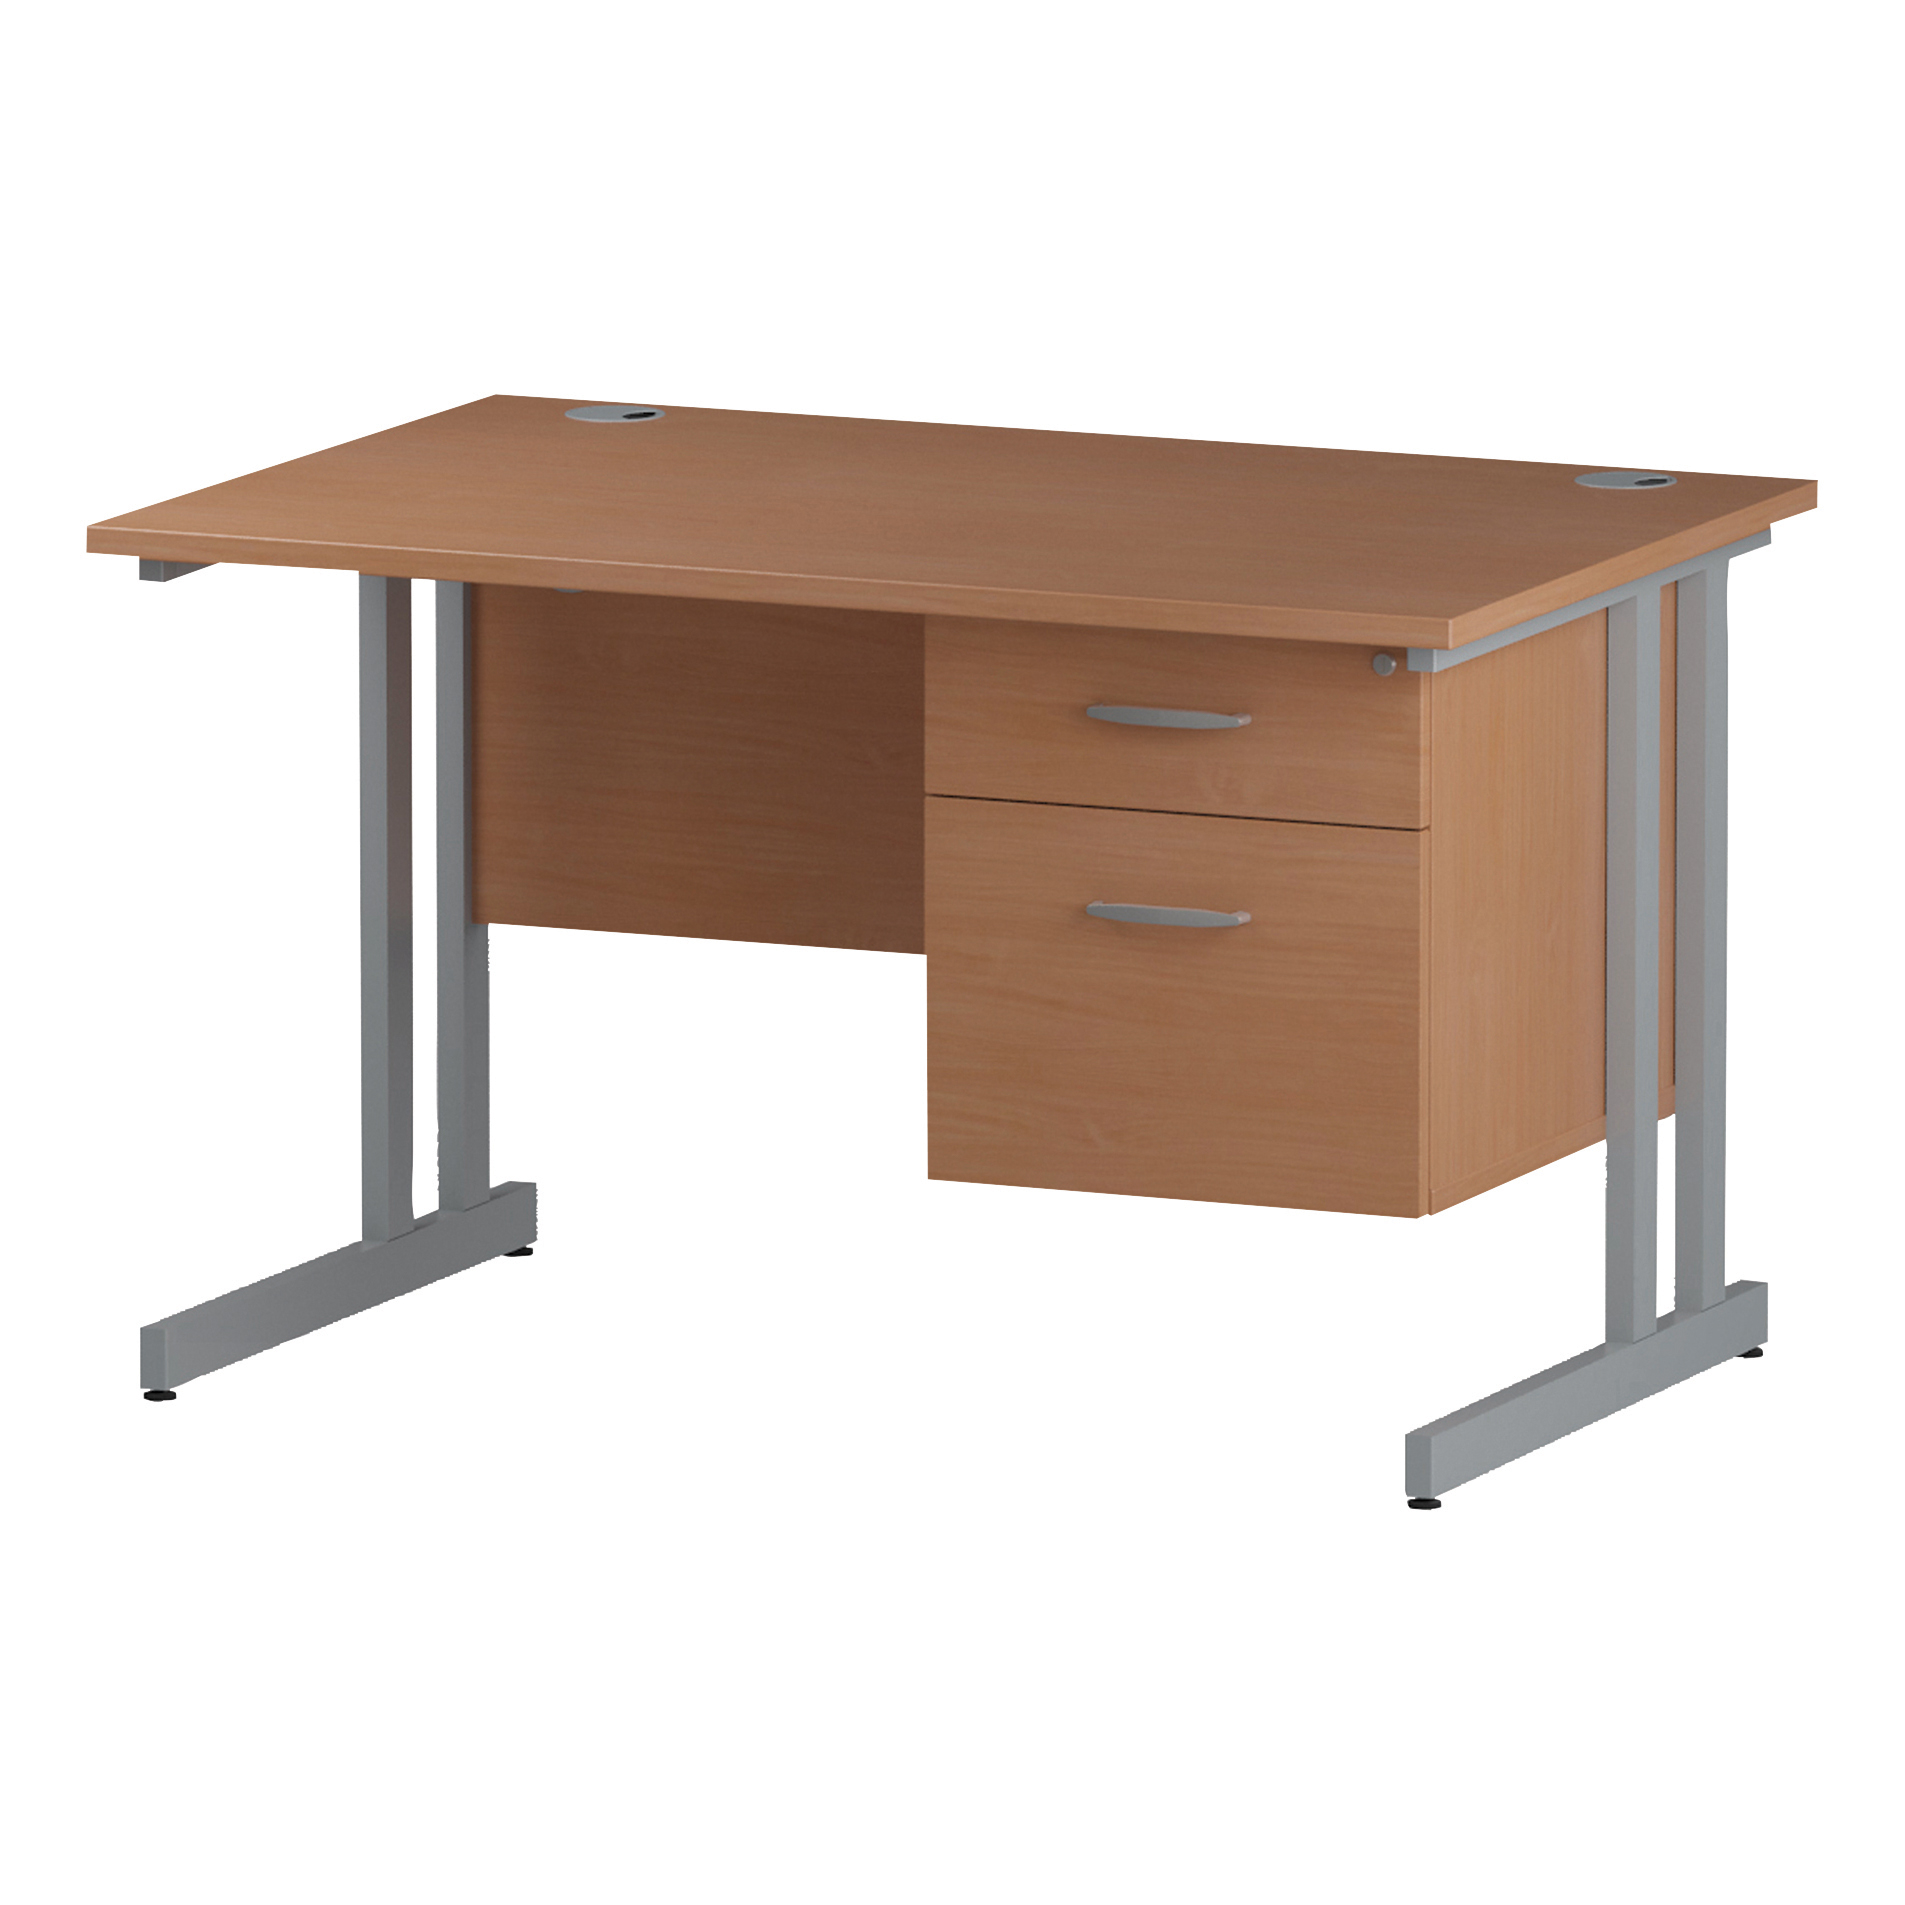 Trexus Rectangular Desk Silver Cantilever Leg 1200x800mm Fixed Pedestal 2 Drawers Beech Ref I001688